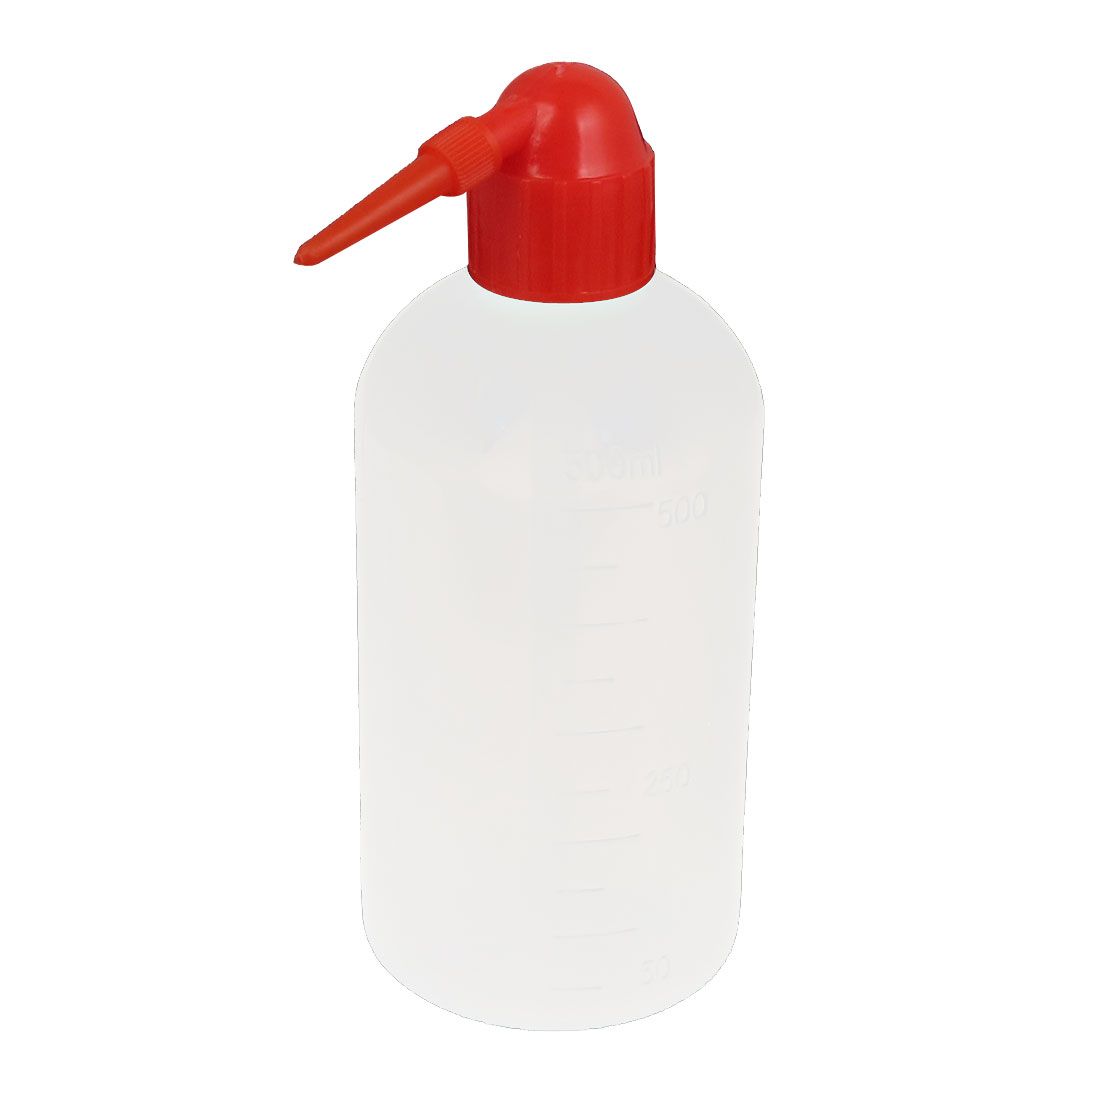 500mL Capacity Red Cover Bent Tip Plastic Cleaning Alcohol Container Tattoo Wash Squeeze Bottle